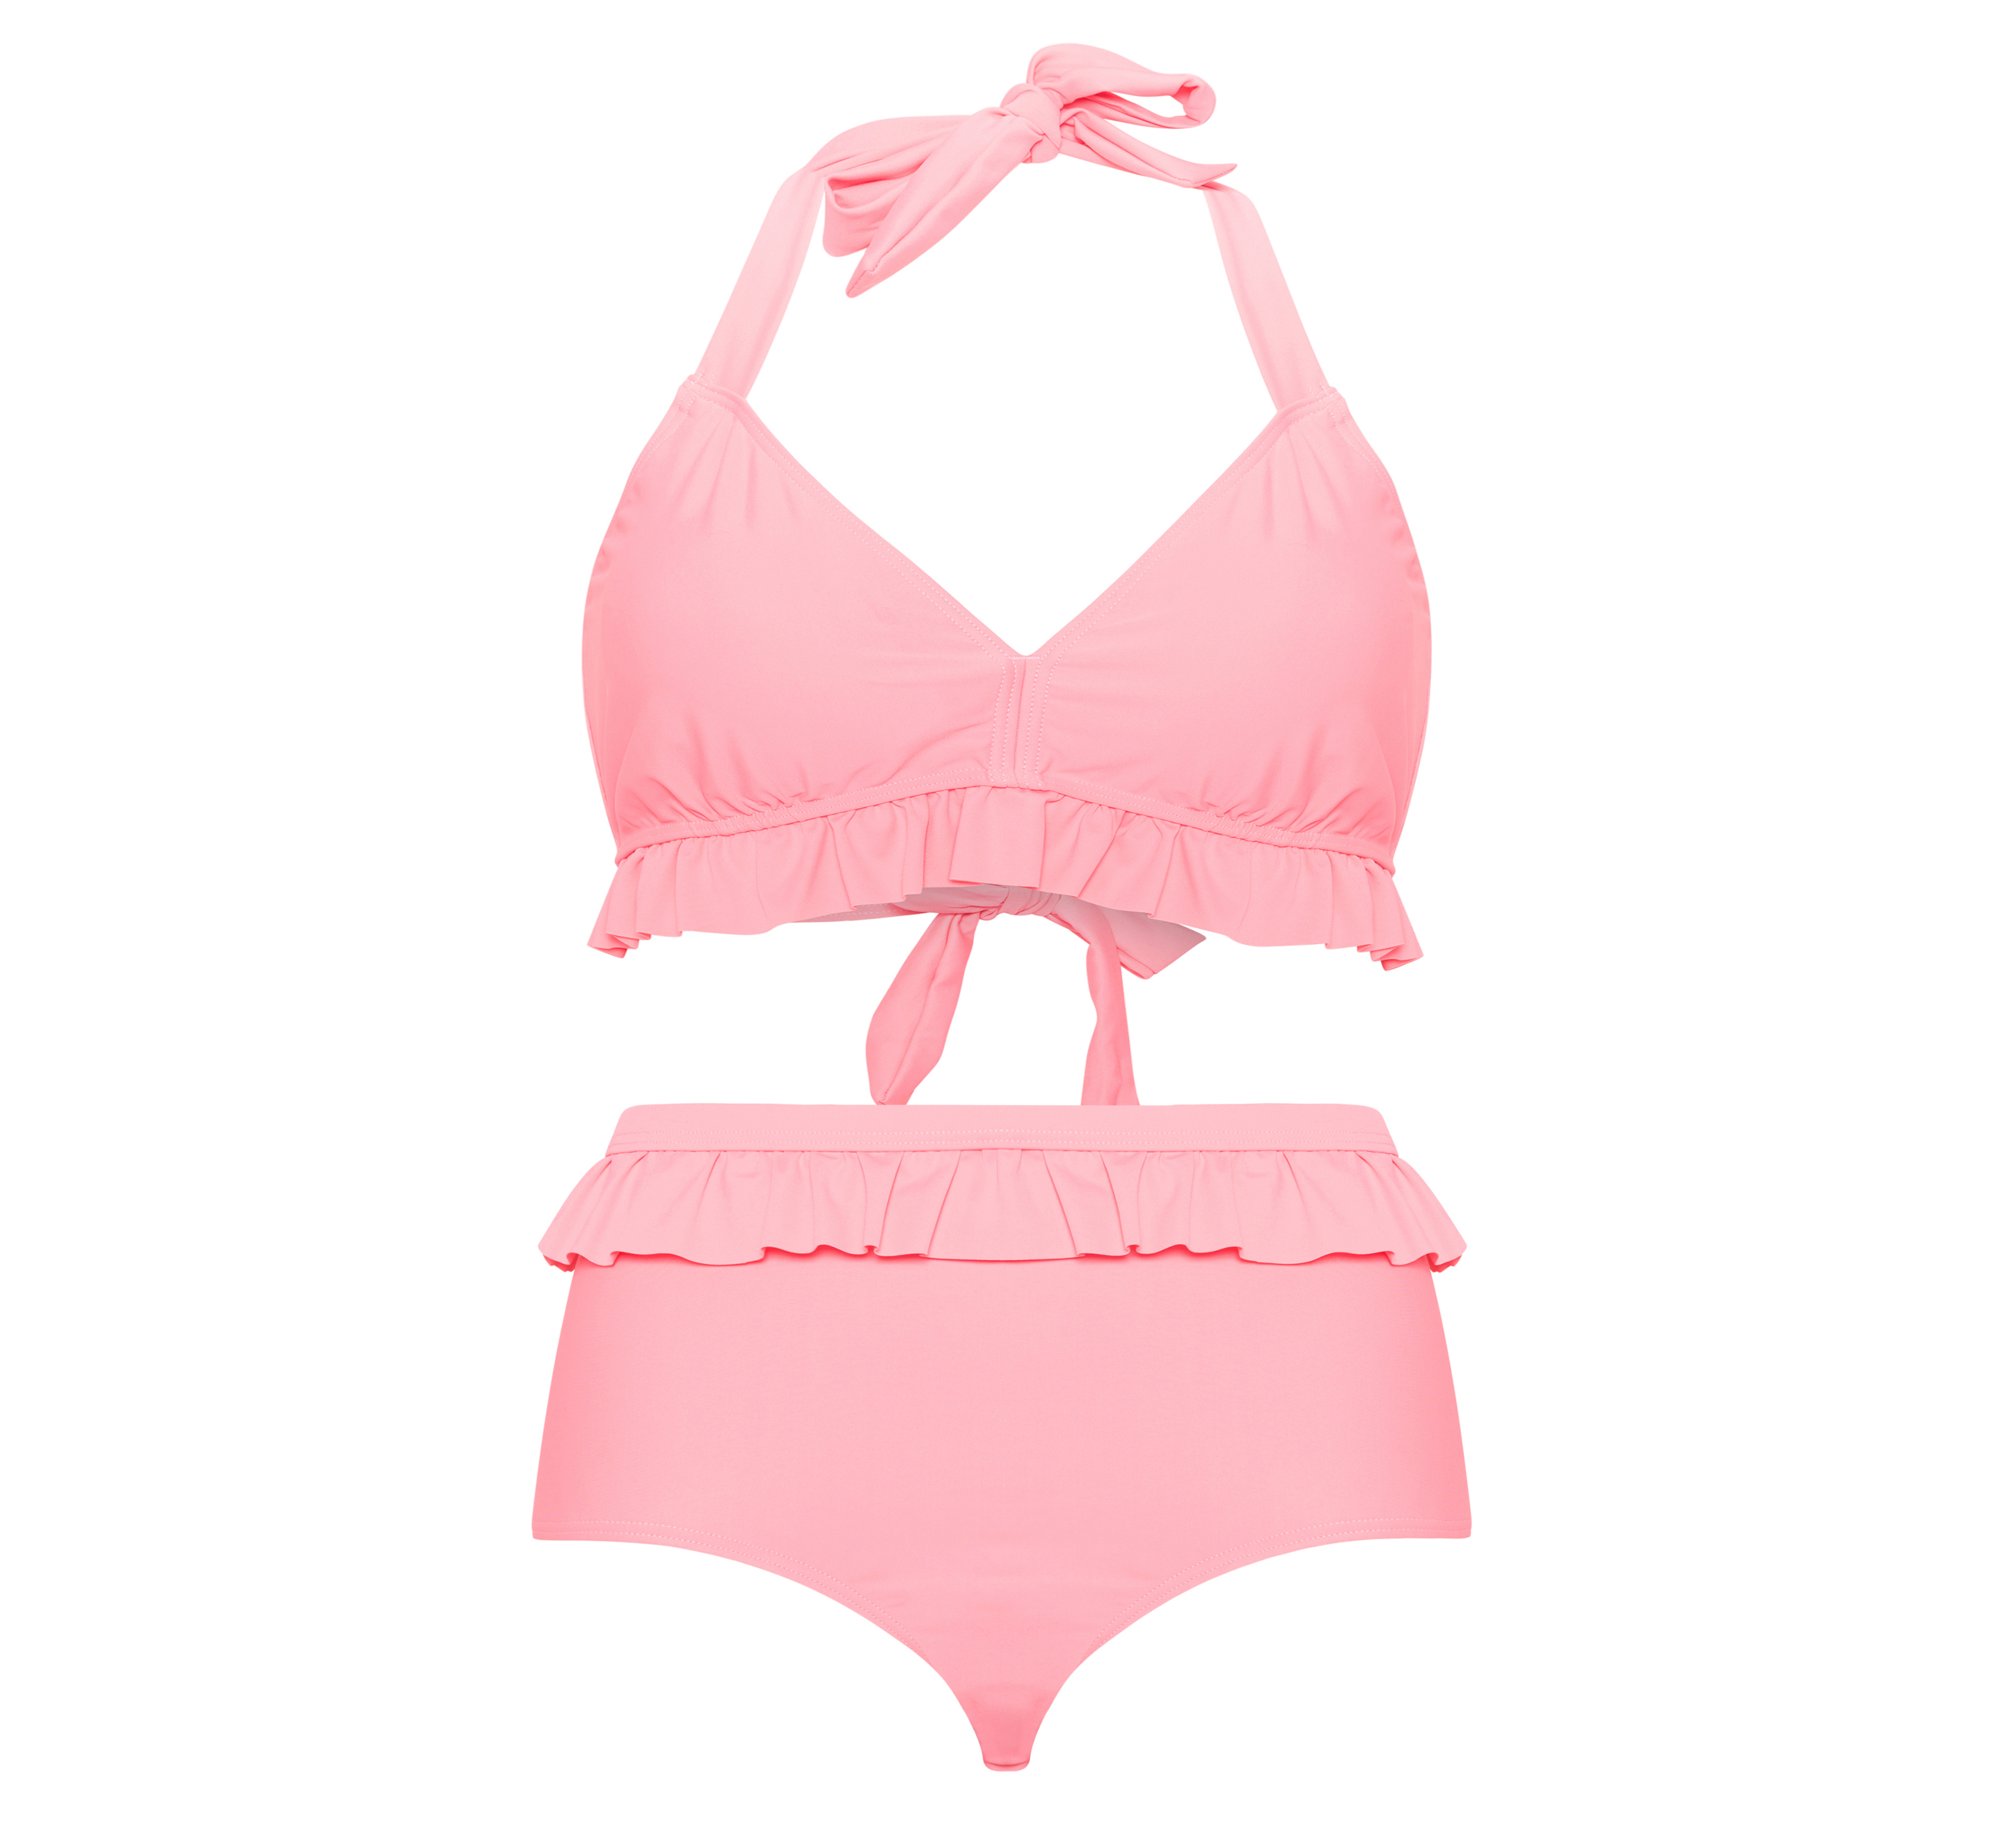 8cf49c6f33 Scared of the skimpy swimwear trend  These confidence-boosting ...